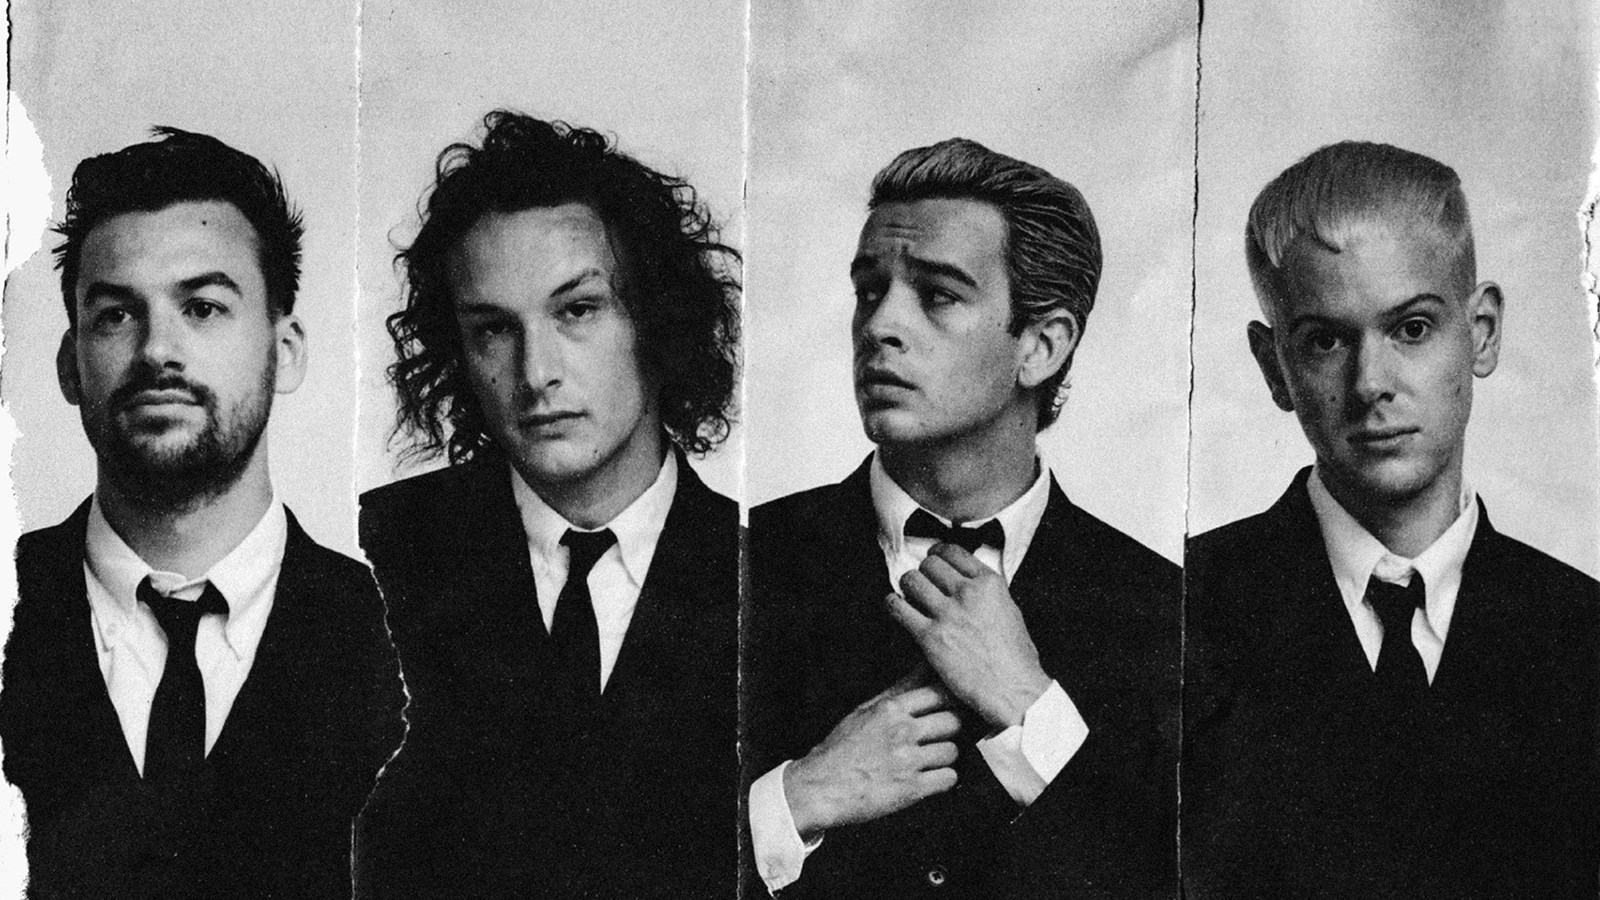 The 1975's A Brief Inquiry into Online Relationships: What You Need To Know